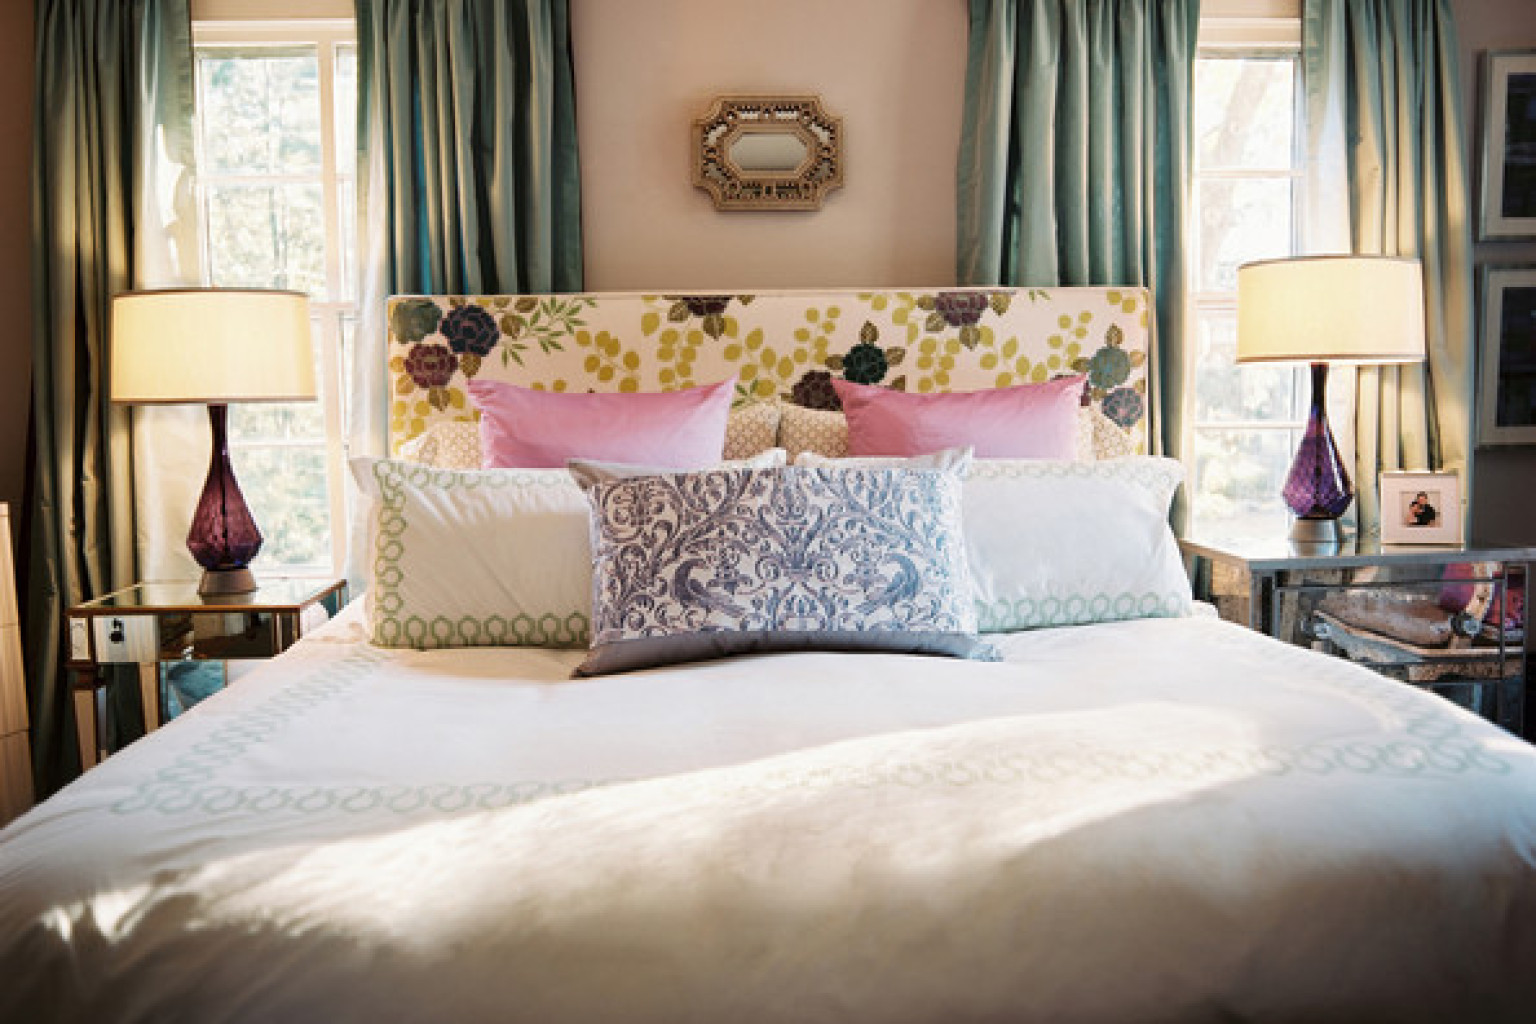 Romantic Bedroom Decoration 8 Romantic Bedroom Ideas From Lonny That Will Totally Get You In